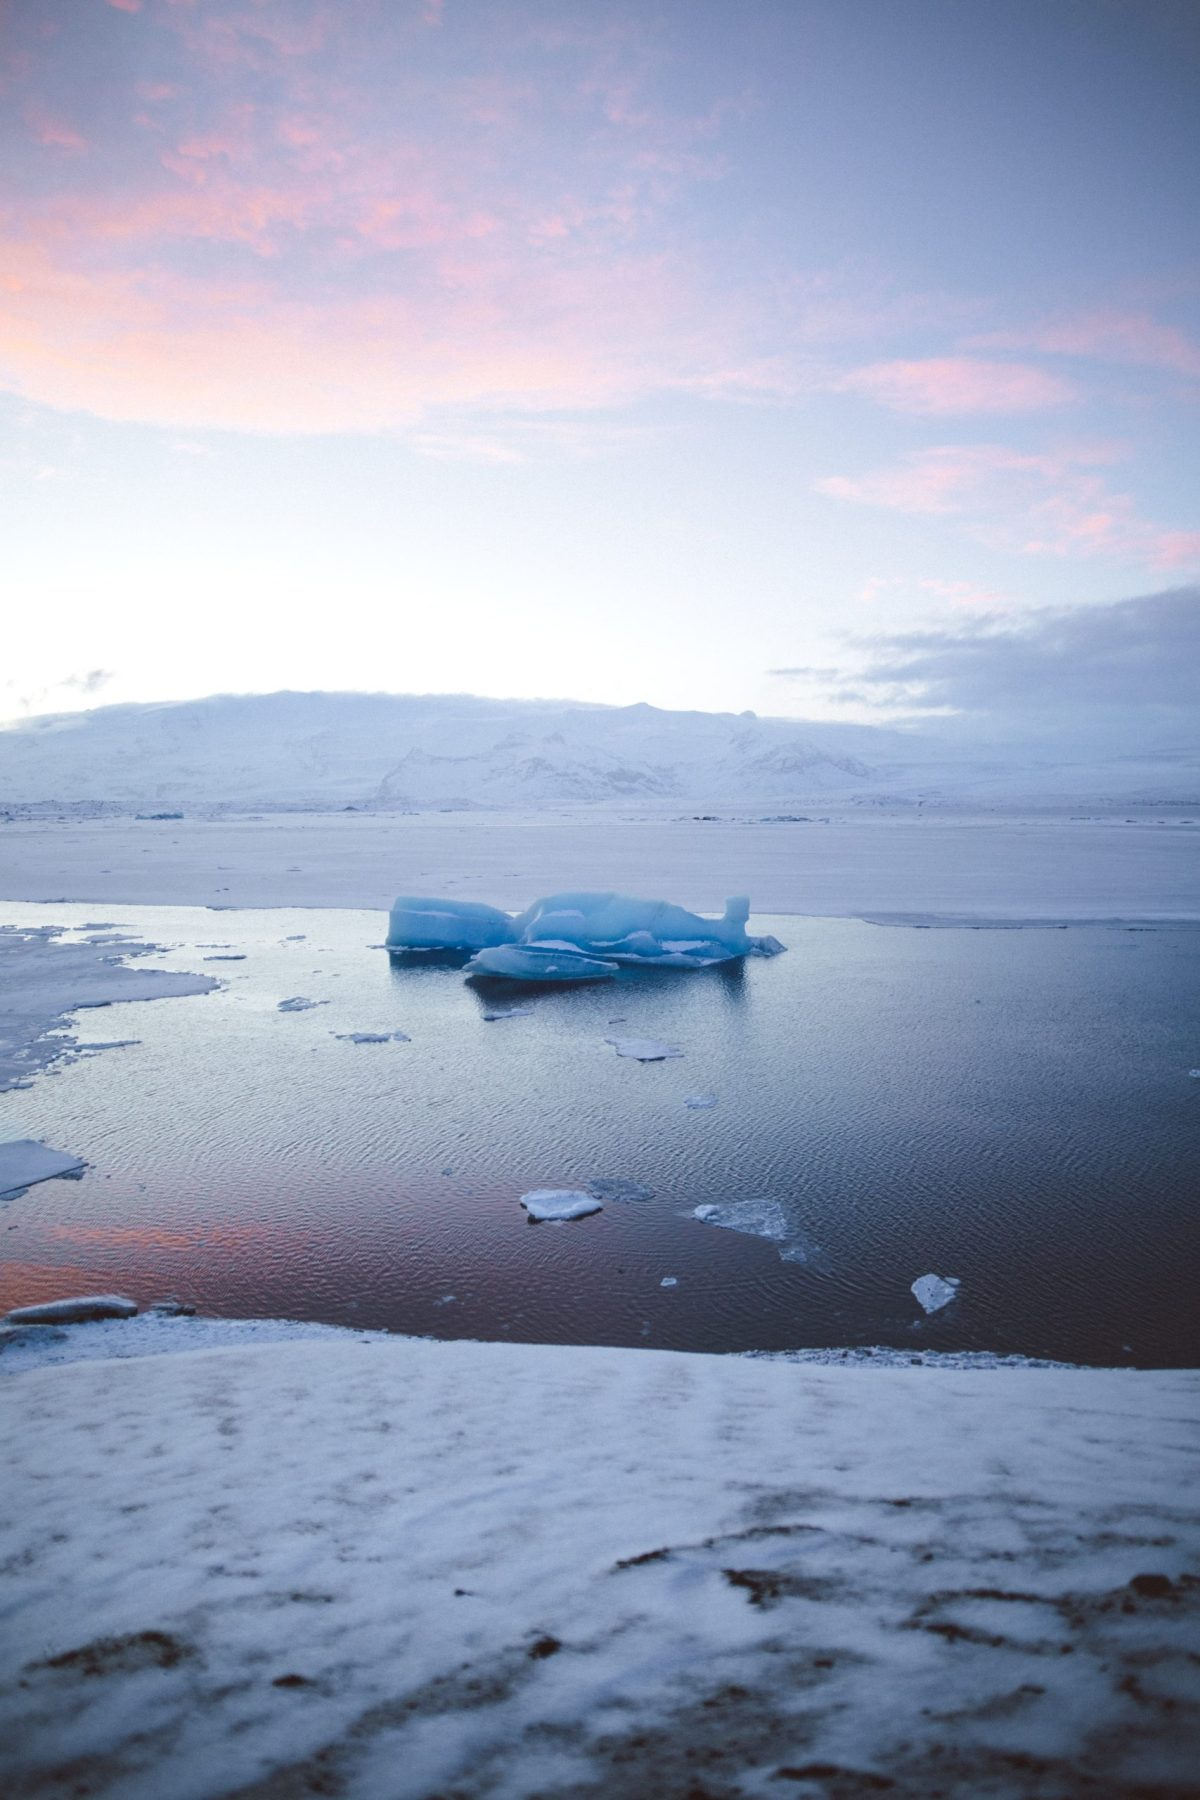 Icy, wintery landscape, it might be just after dawn or just before dusk as there are pink cloud in the distance